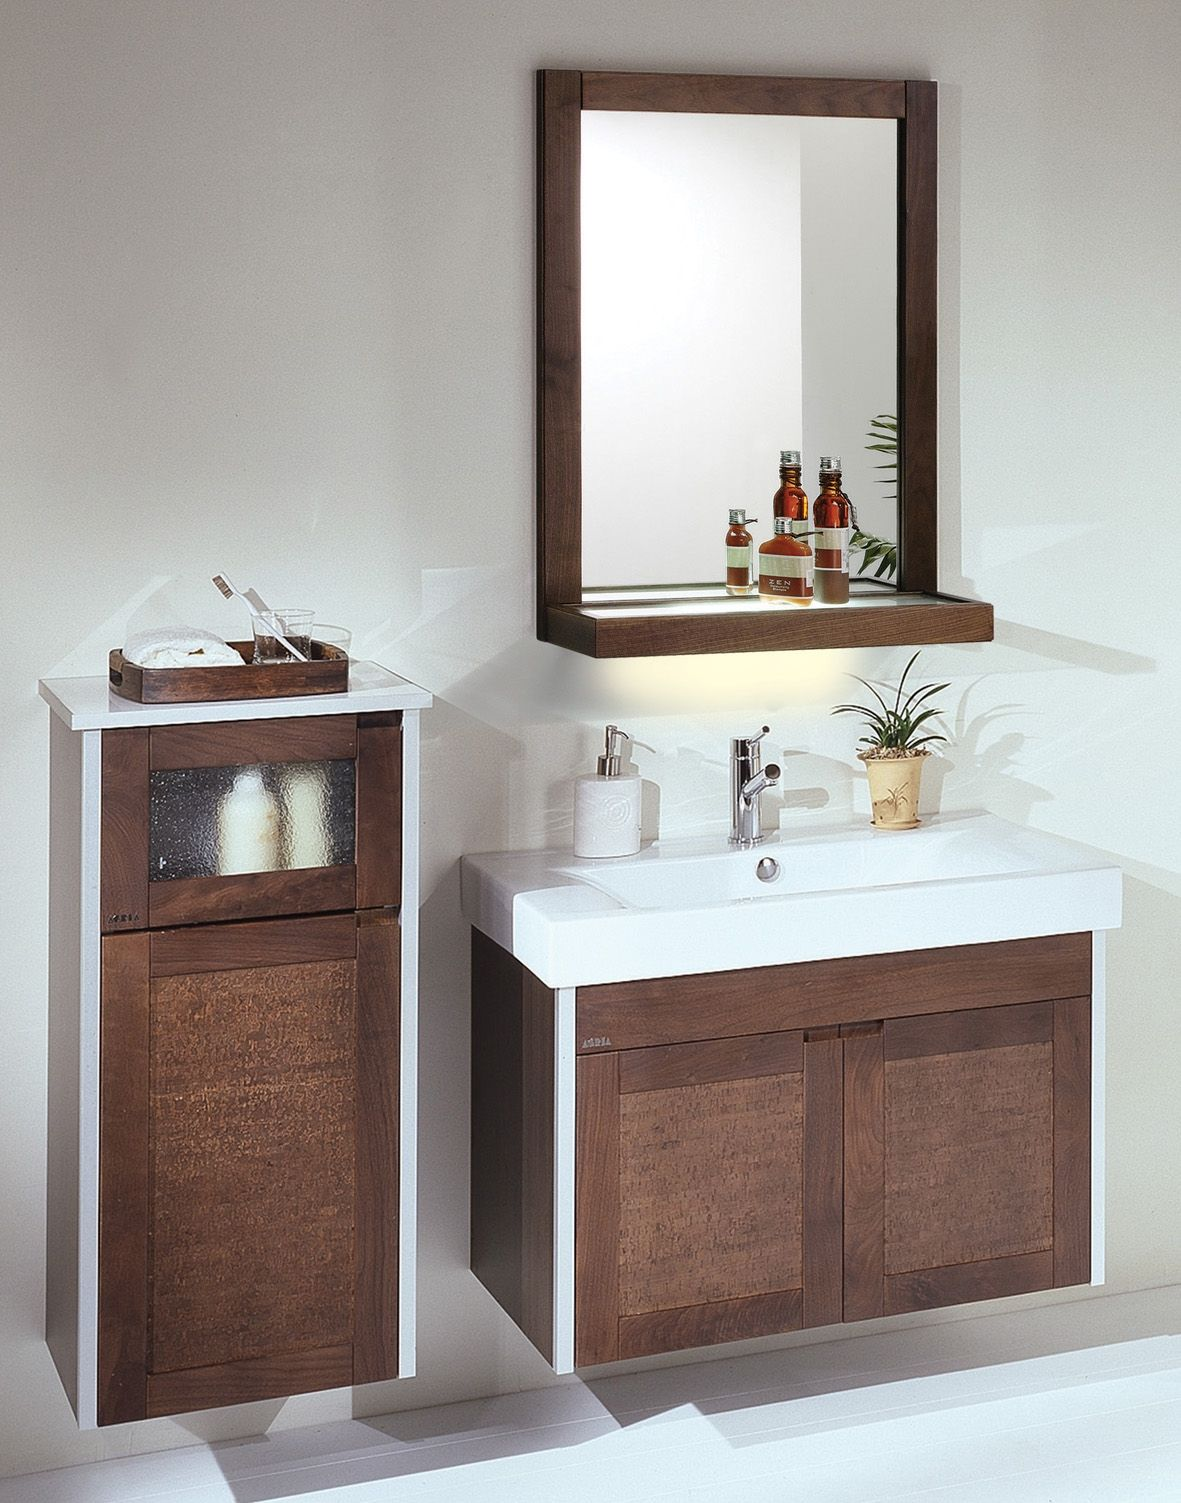 Bathroom Vanity Traditional Mirror Storage Oak Bathroom Vanity - Bathroom sinks and vanities for small spaces